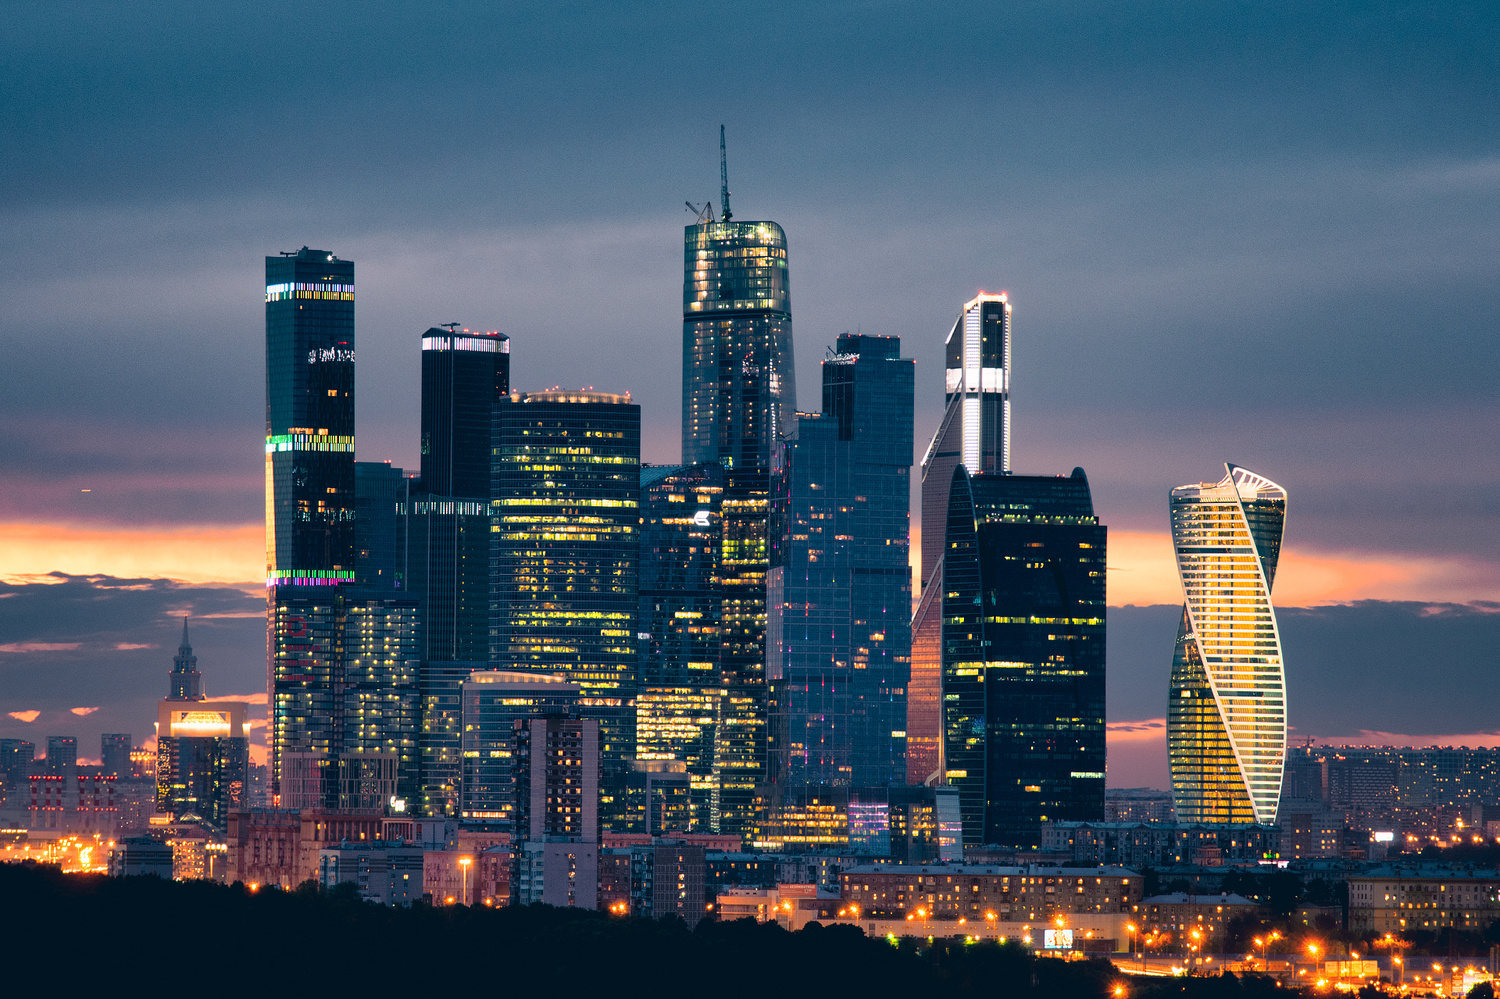 Moscow International Business Center by Aleksey Makeev